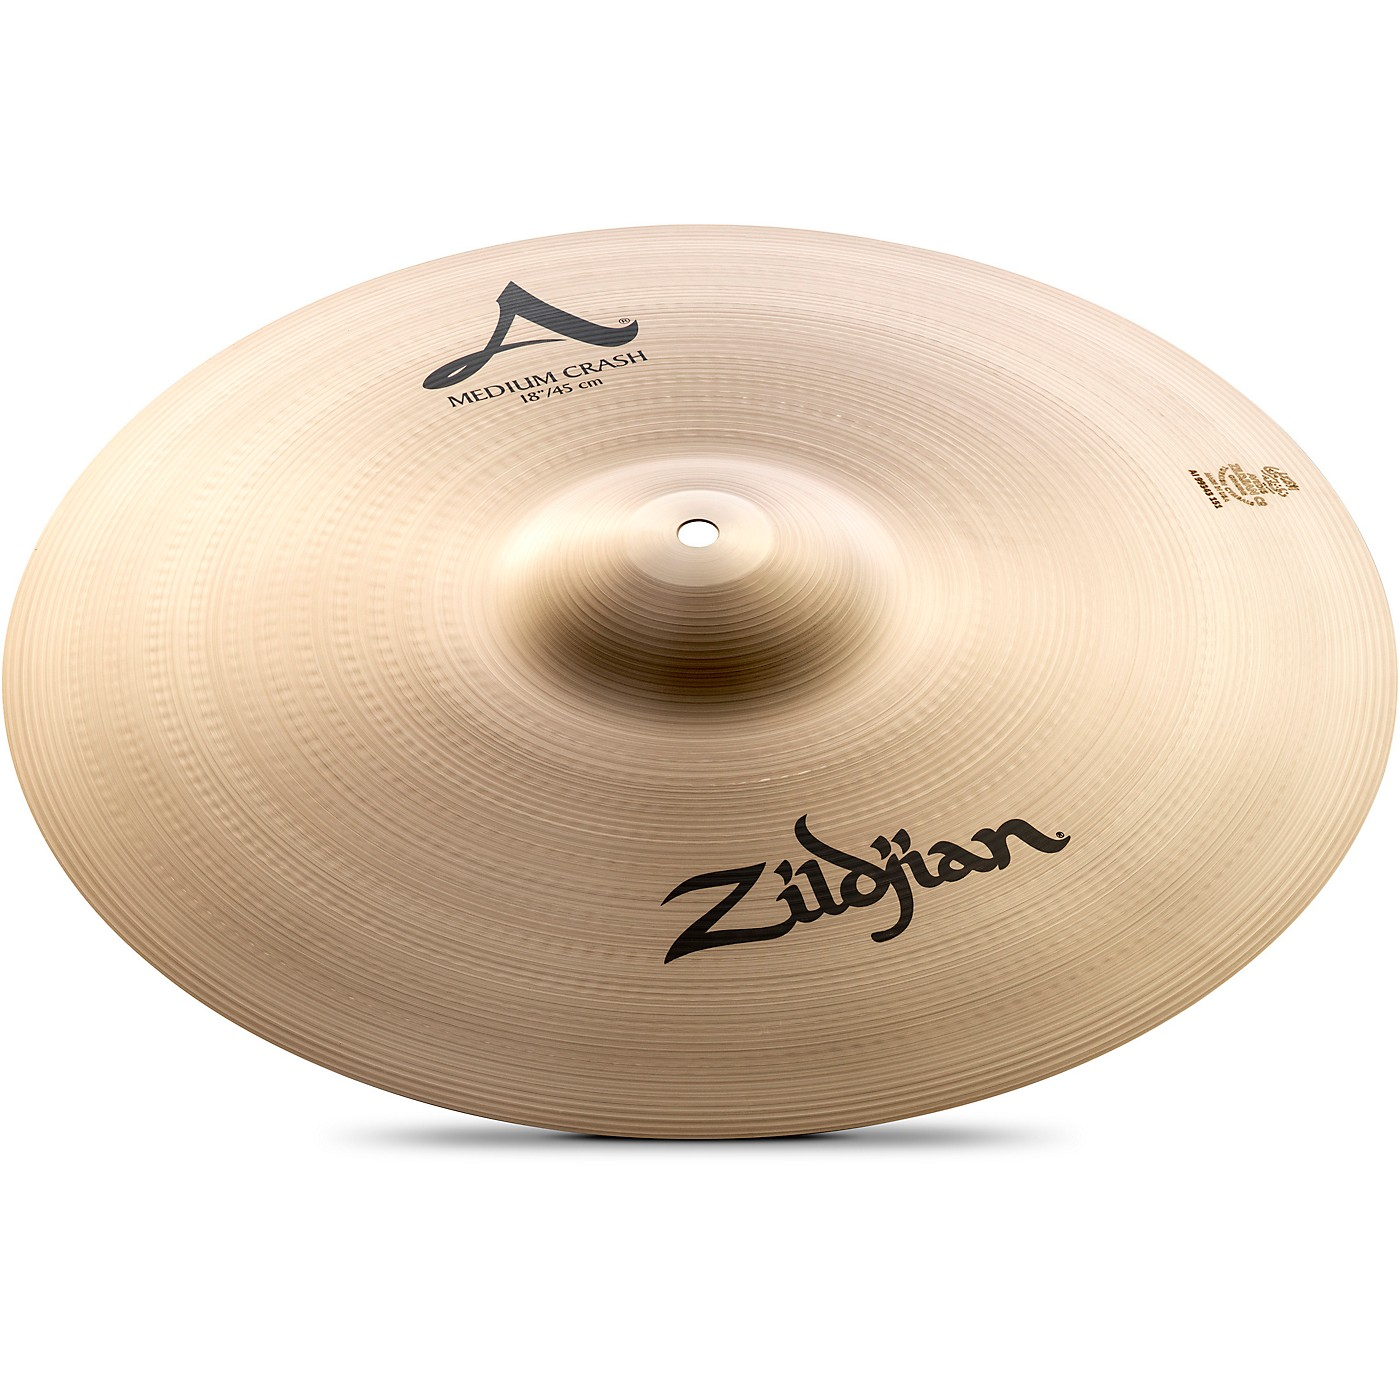 Zildjian A Series Medium Crash Cymbal thumbnail